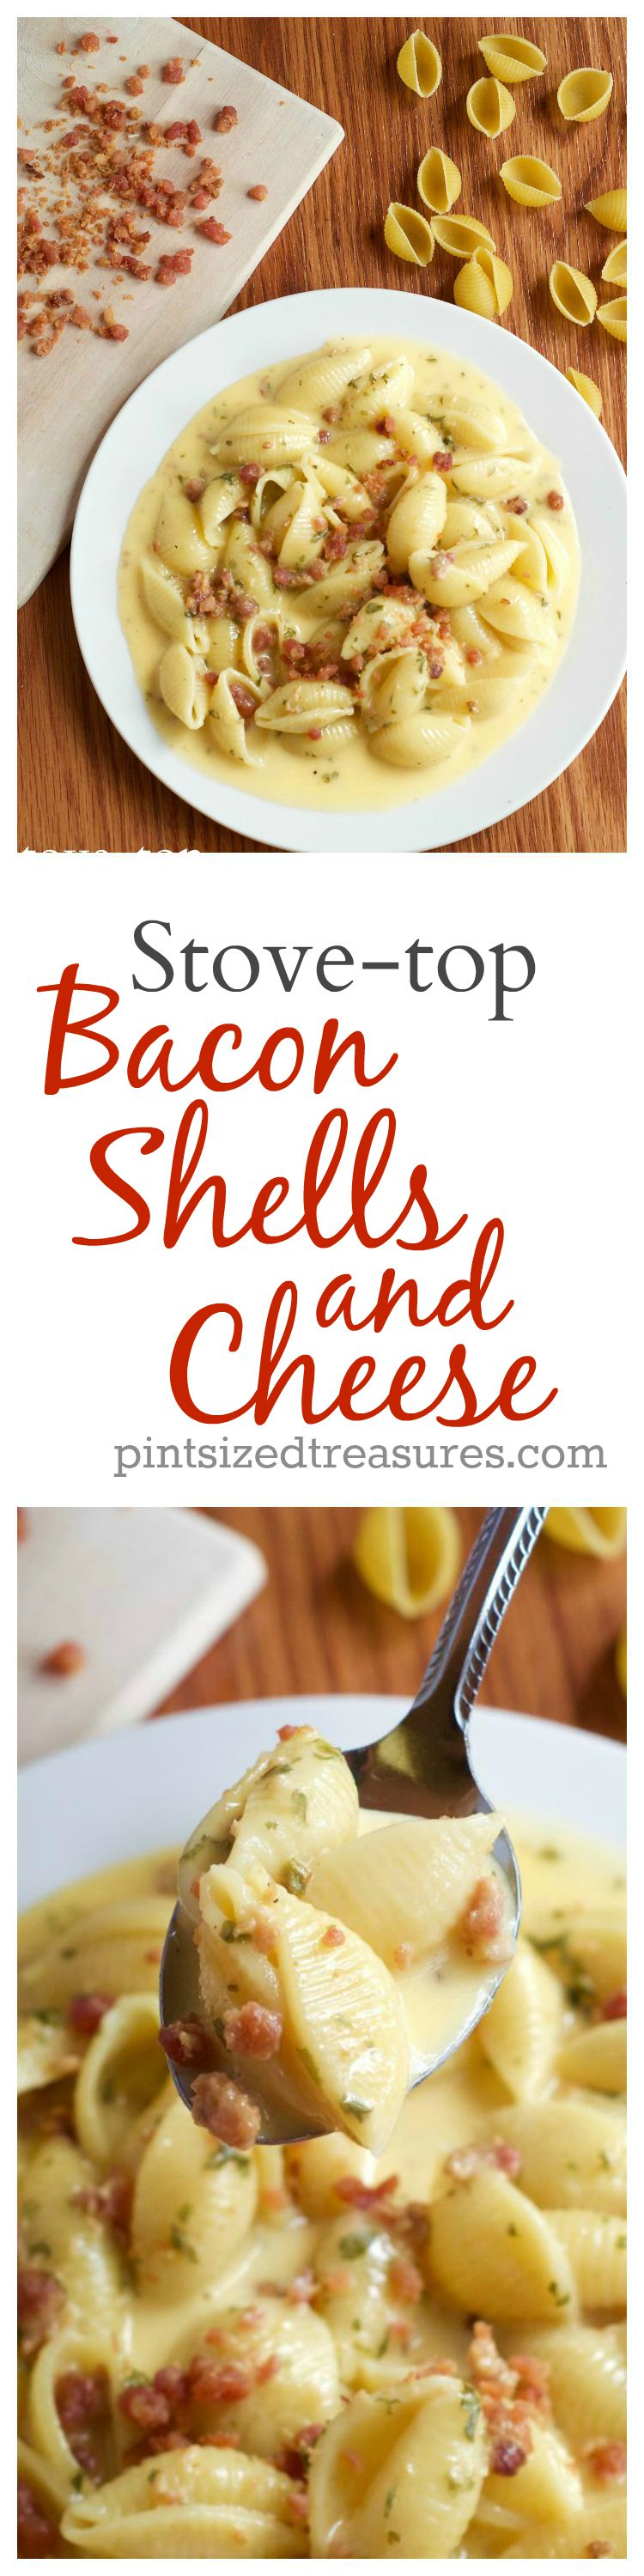 stove-top bacon shells and cheese recipe